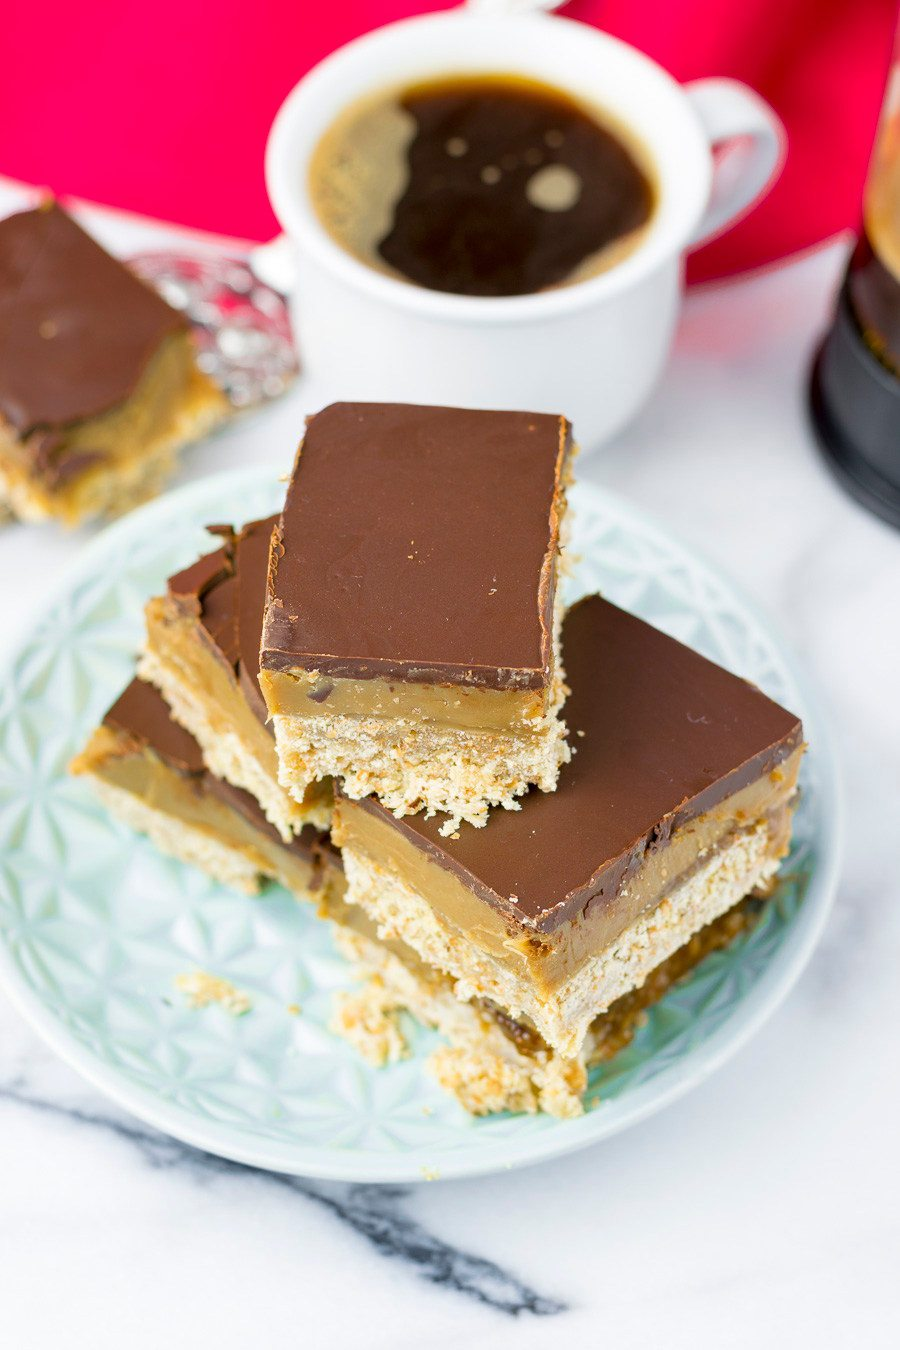 Top view on the caramel shortbread, showing the chocolate top, a cup of coffee in the background.